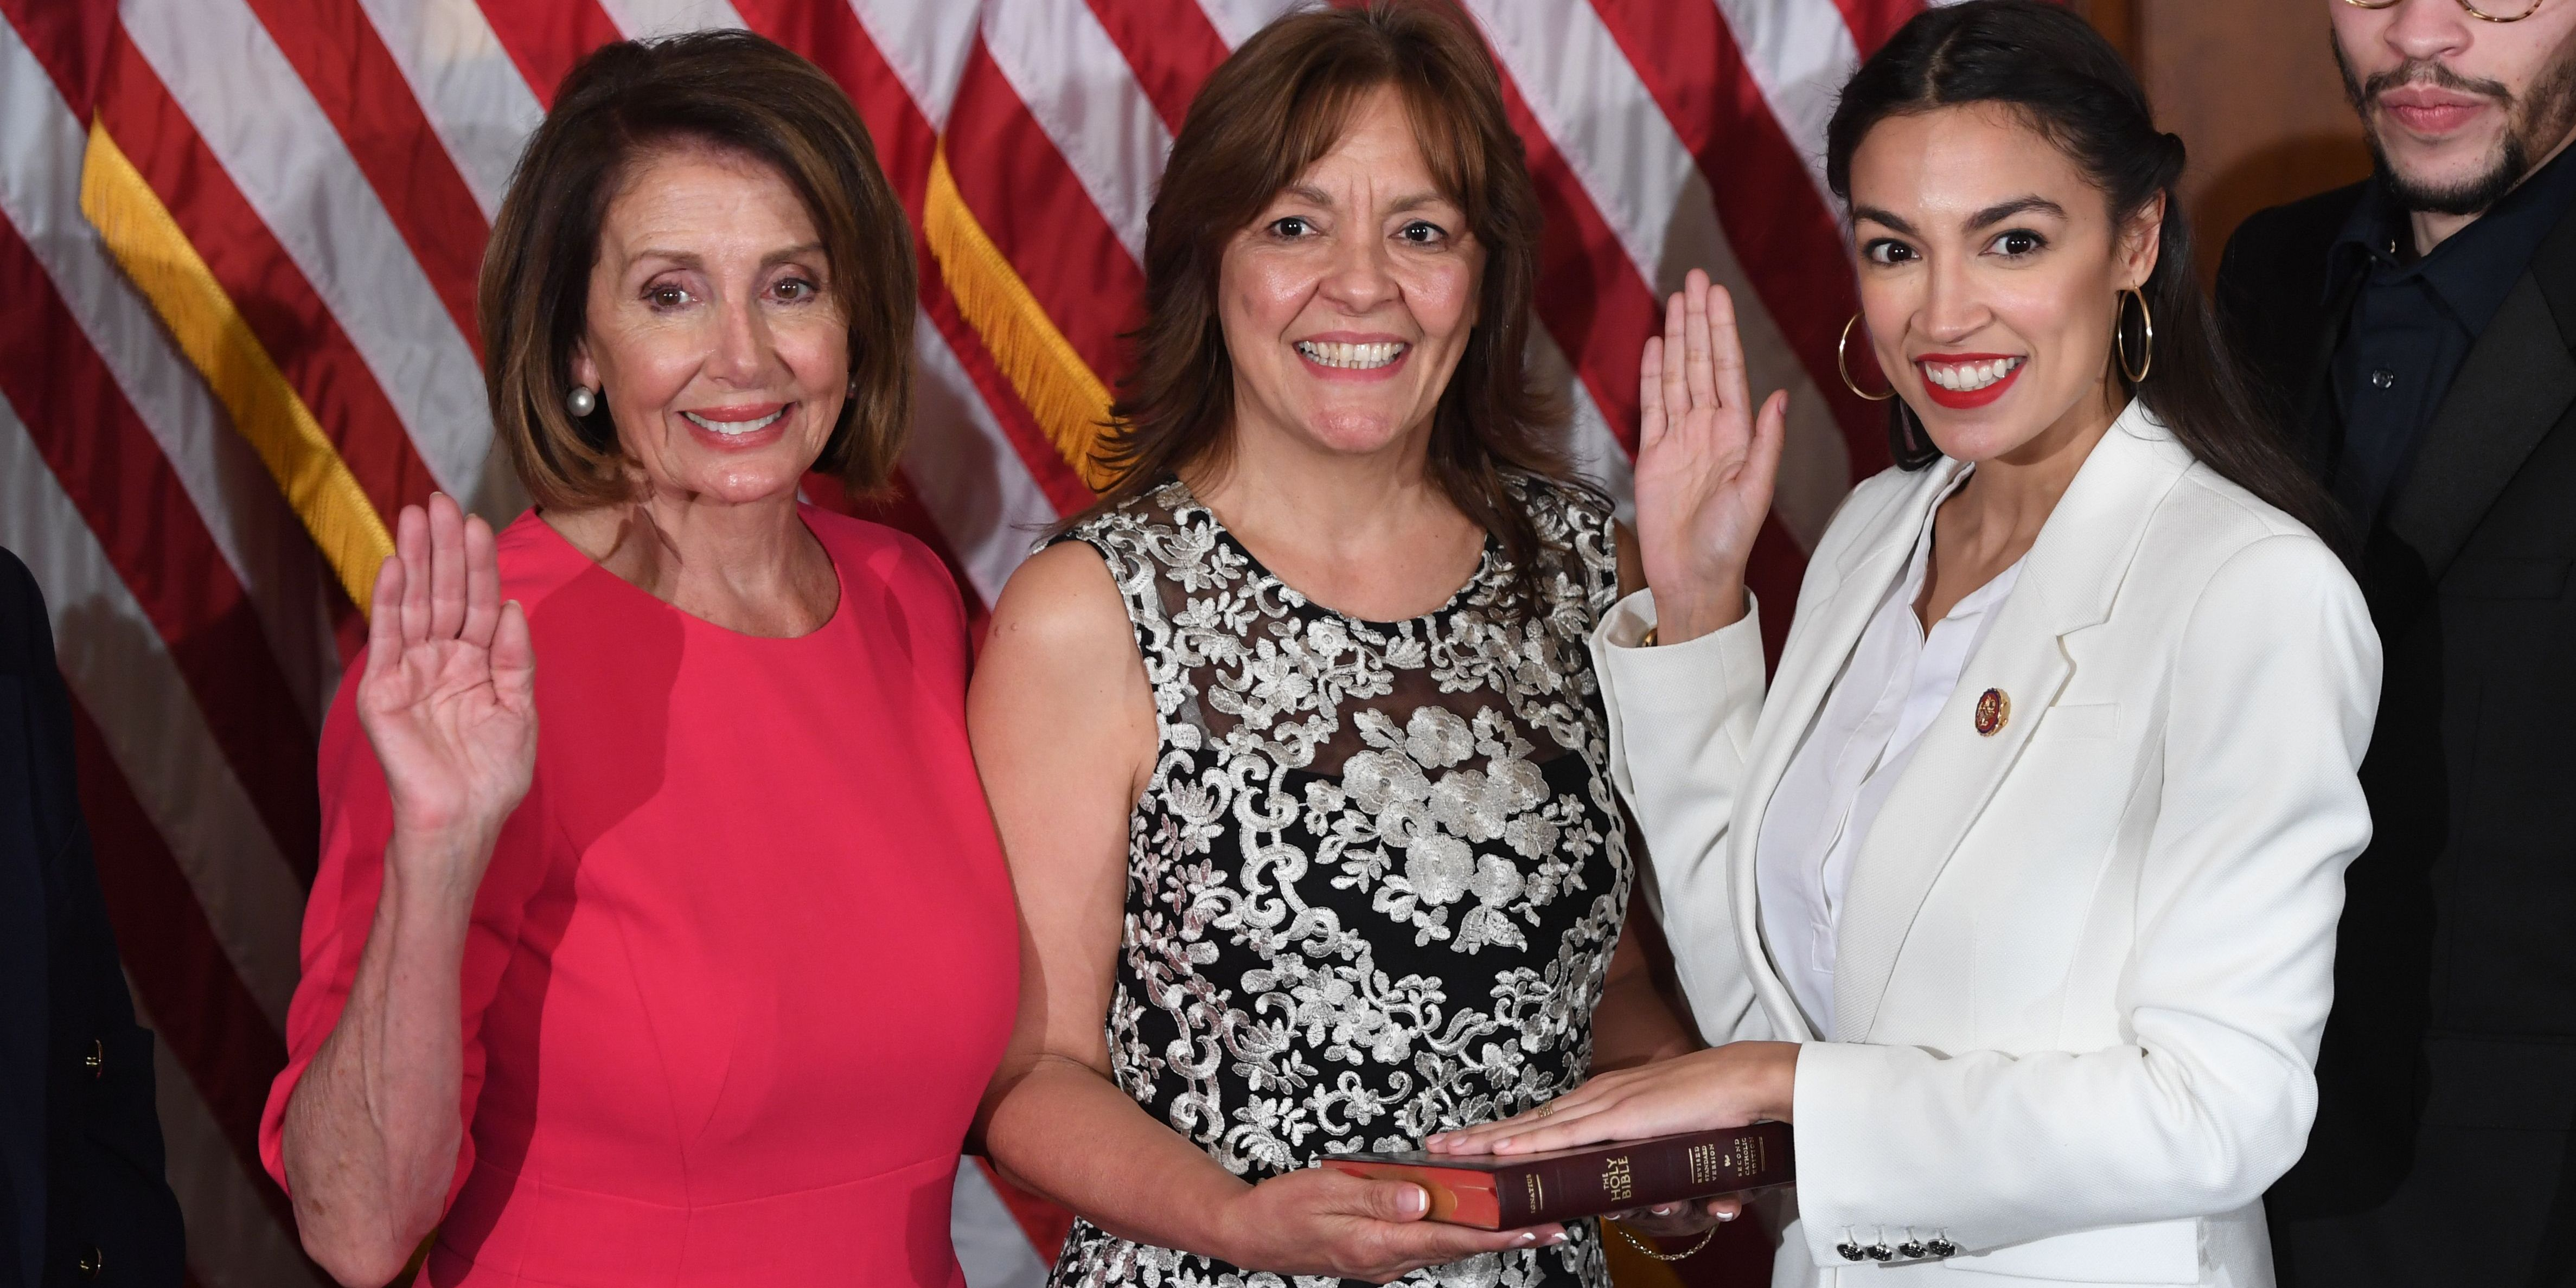 bc8f4c4bf Alexandria Ocasio-Cortez's Swearing-In Outfit Was a Nod to Suffragettes and  Bronx Girls